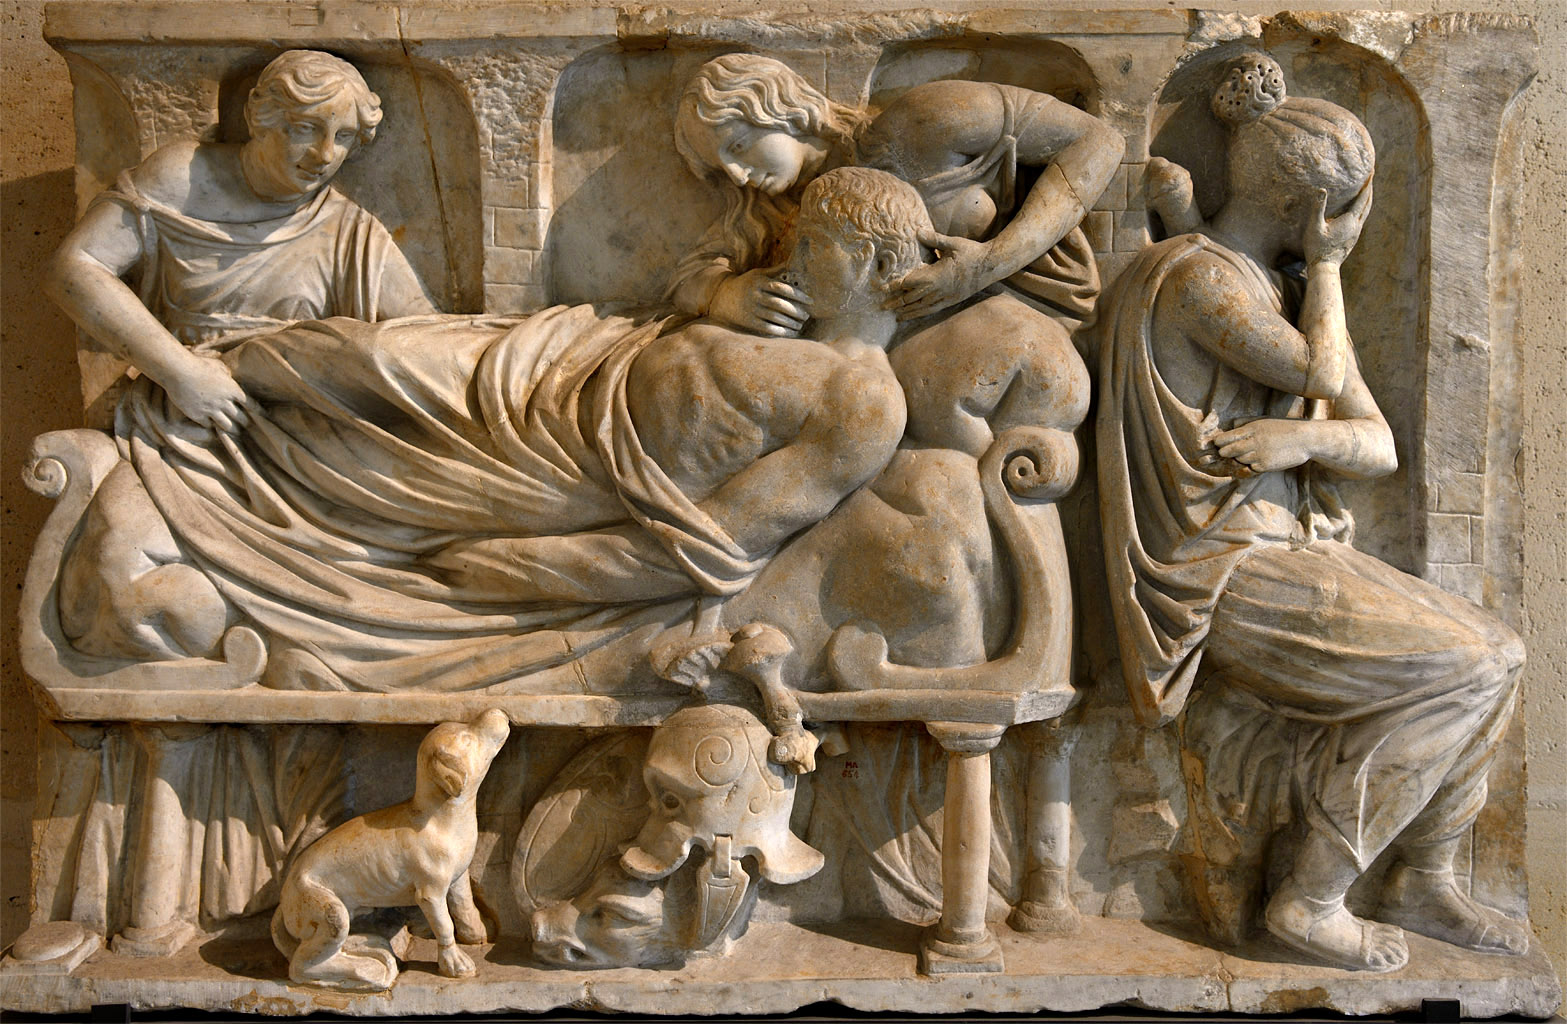 Death of Meleager (front panel of a sarcophagus). Marble. Roman work 160-170 CE. Inv. No. Ma 654. Paris, Louvre Museum